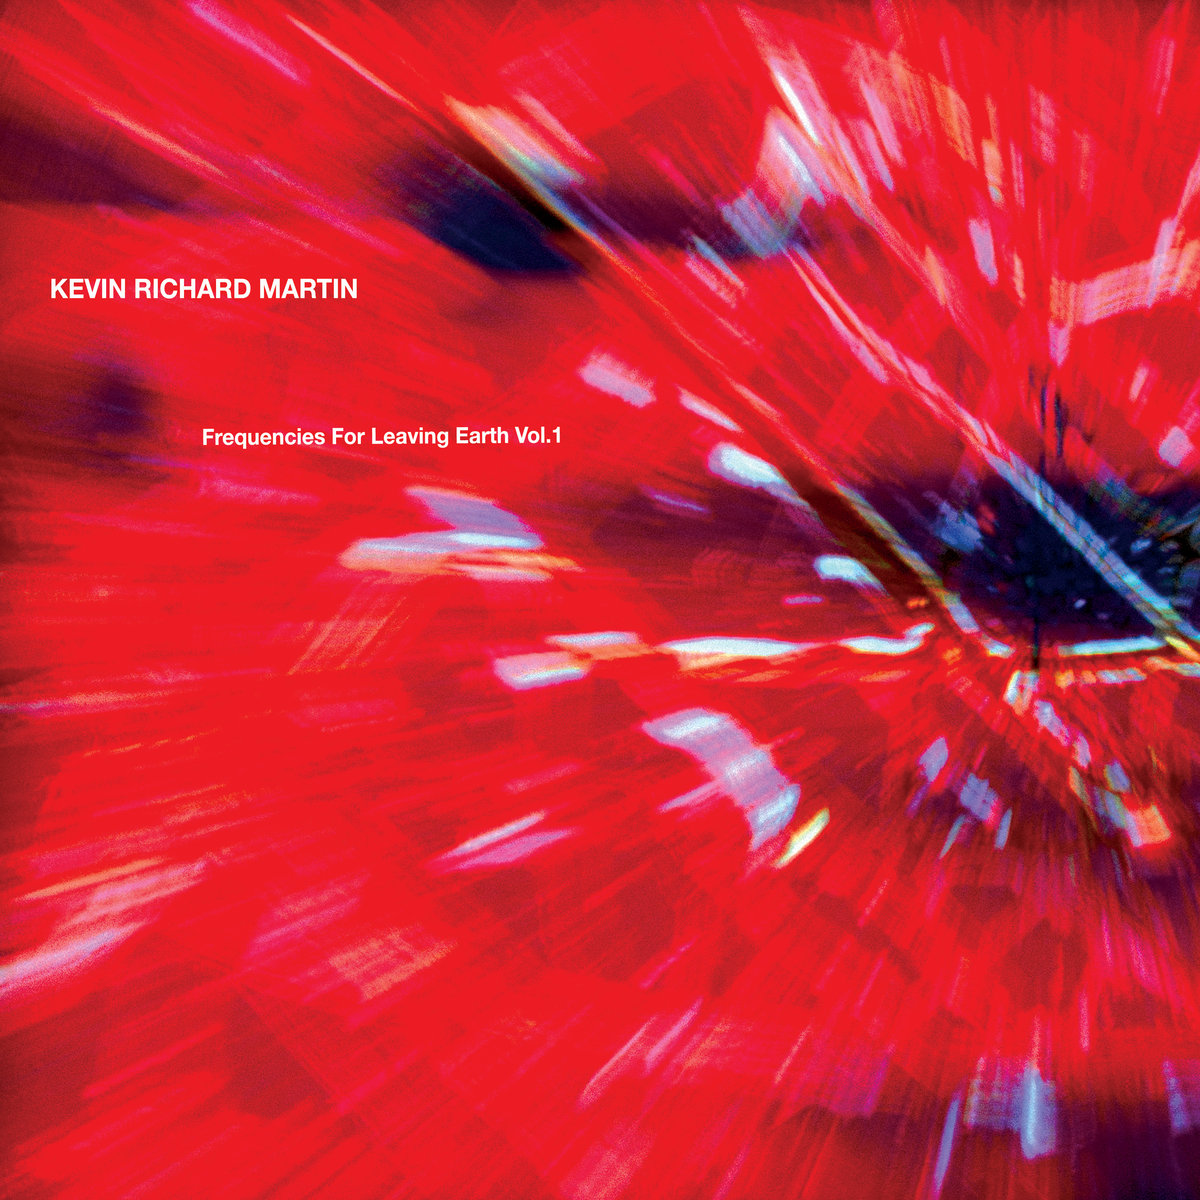 Frequencies for Leaving Earth​ by Kevin Richard Martin